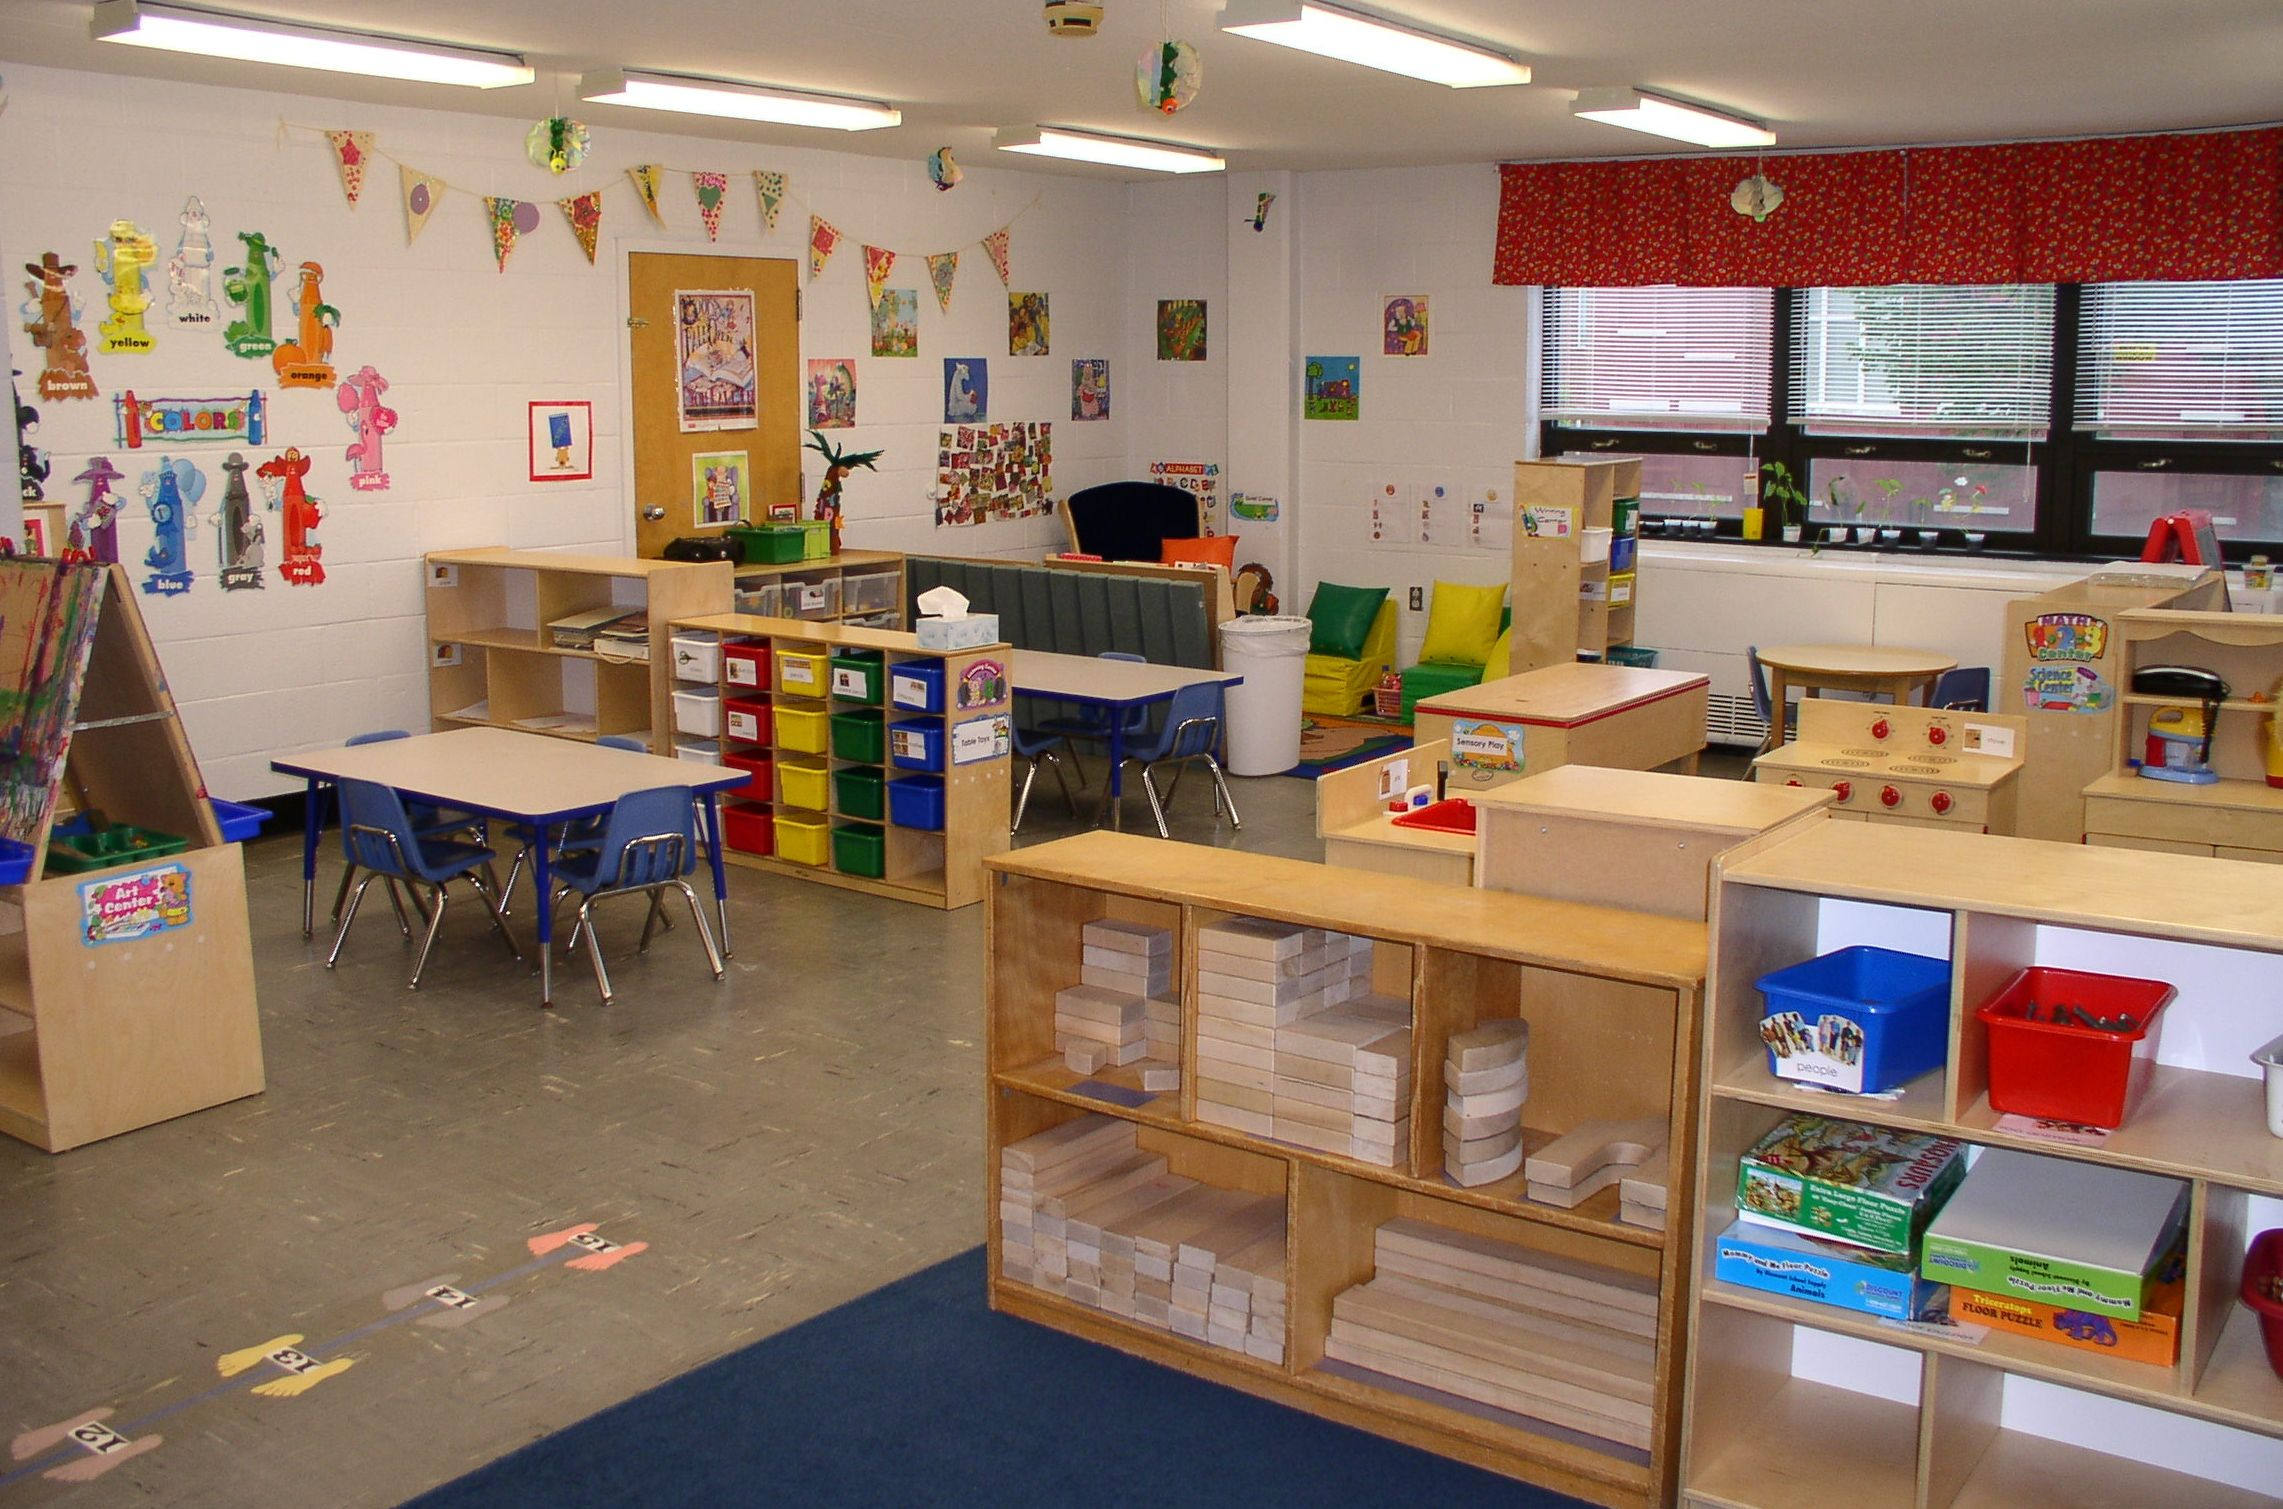 Classroom Design Ideas Preschool : Ywca elmira nice layout classroom designs for